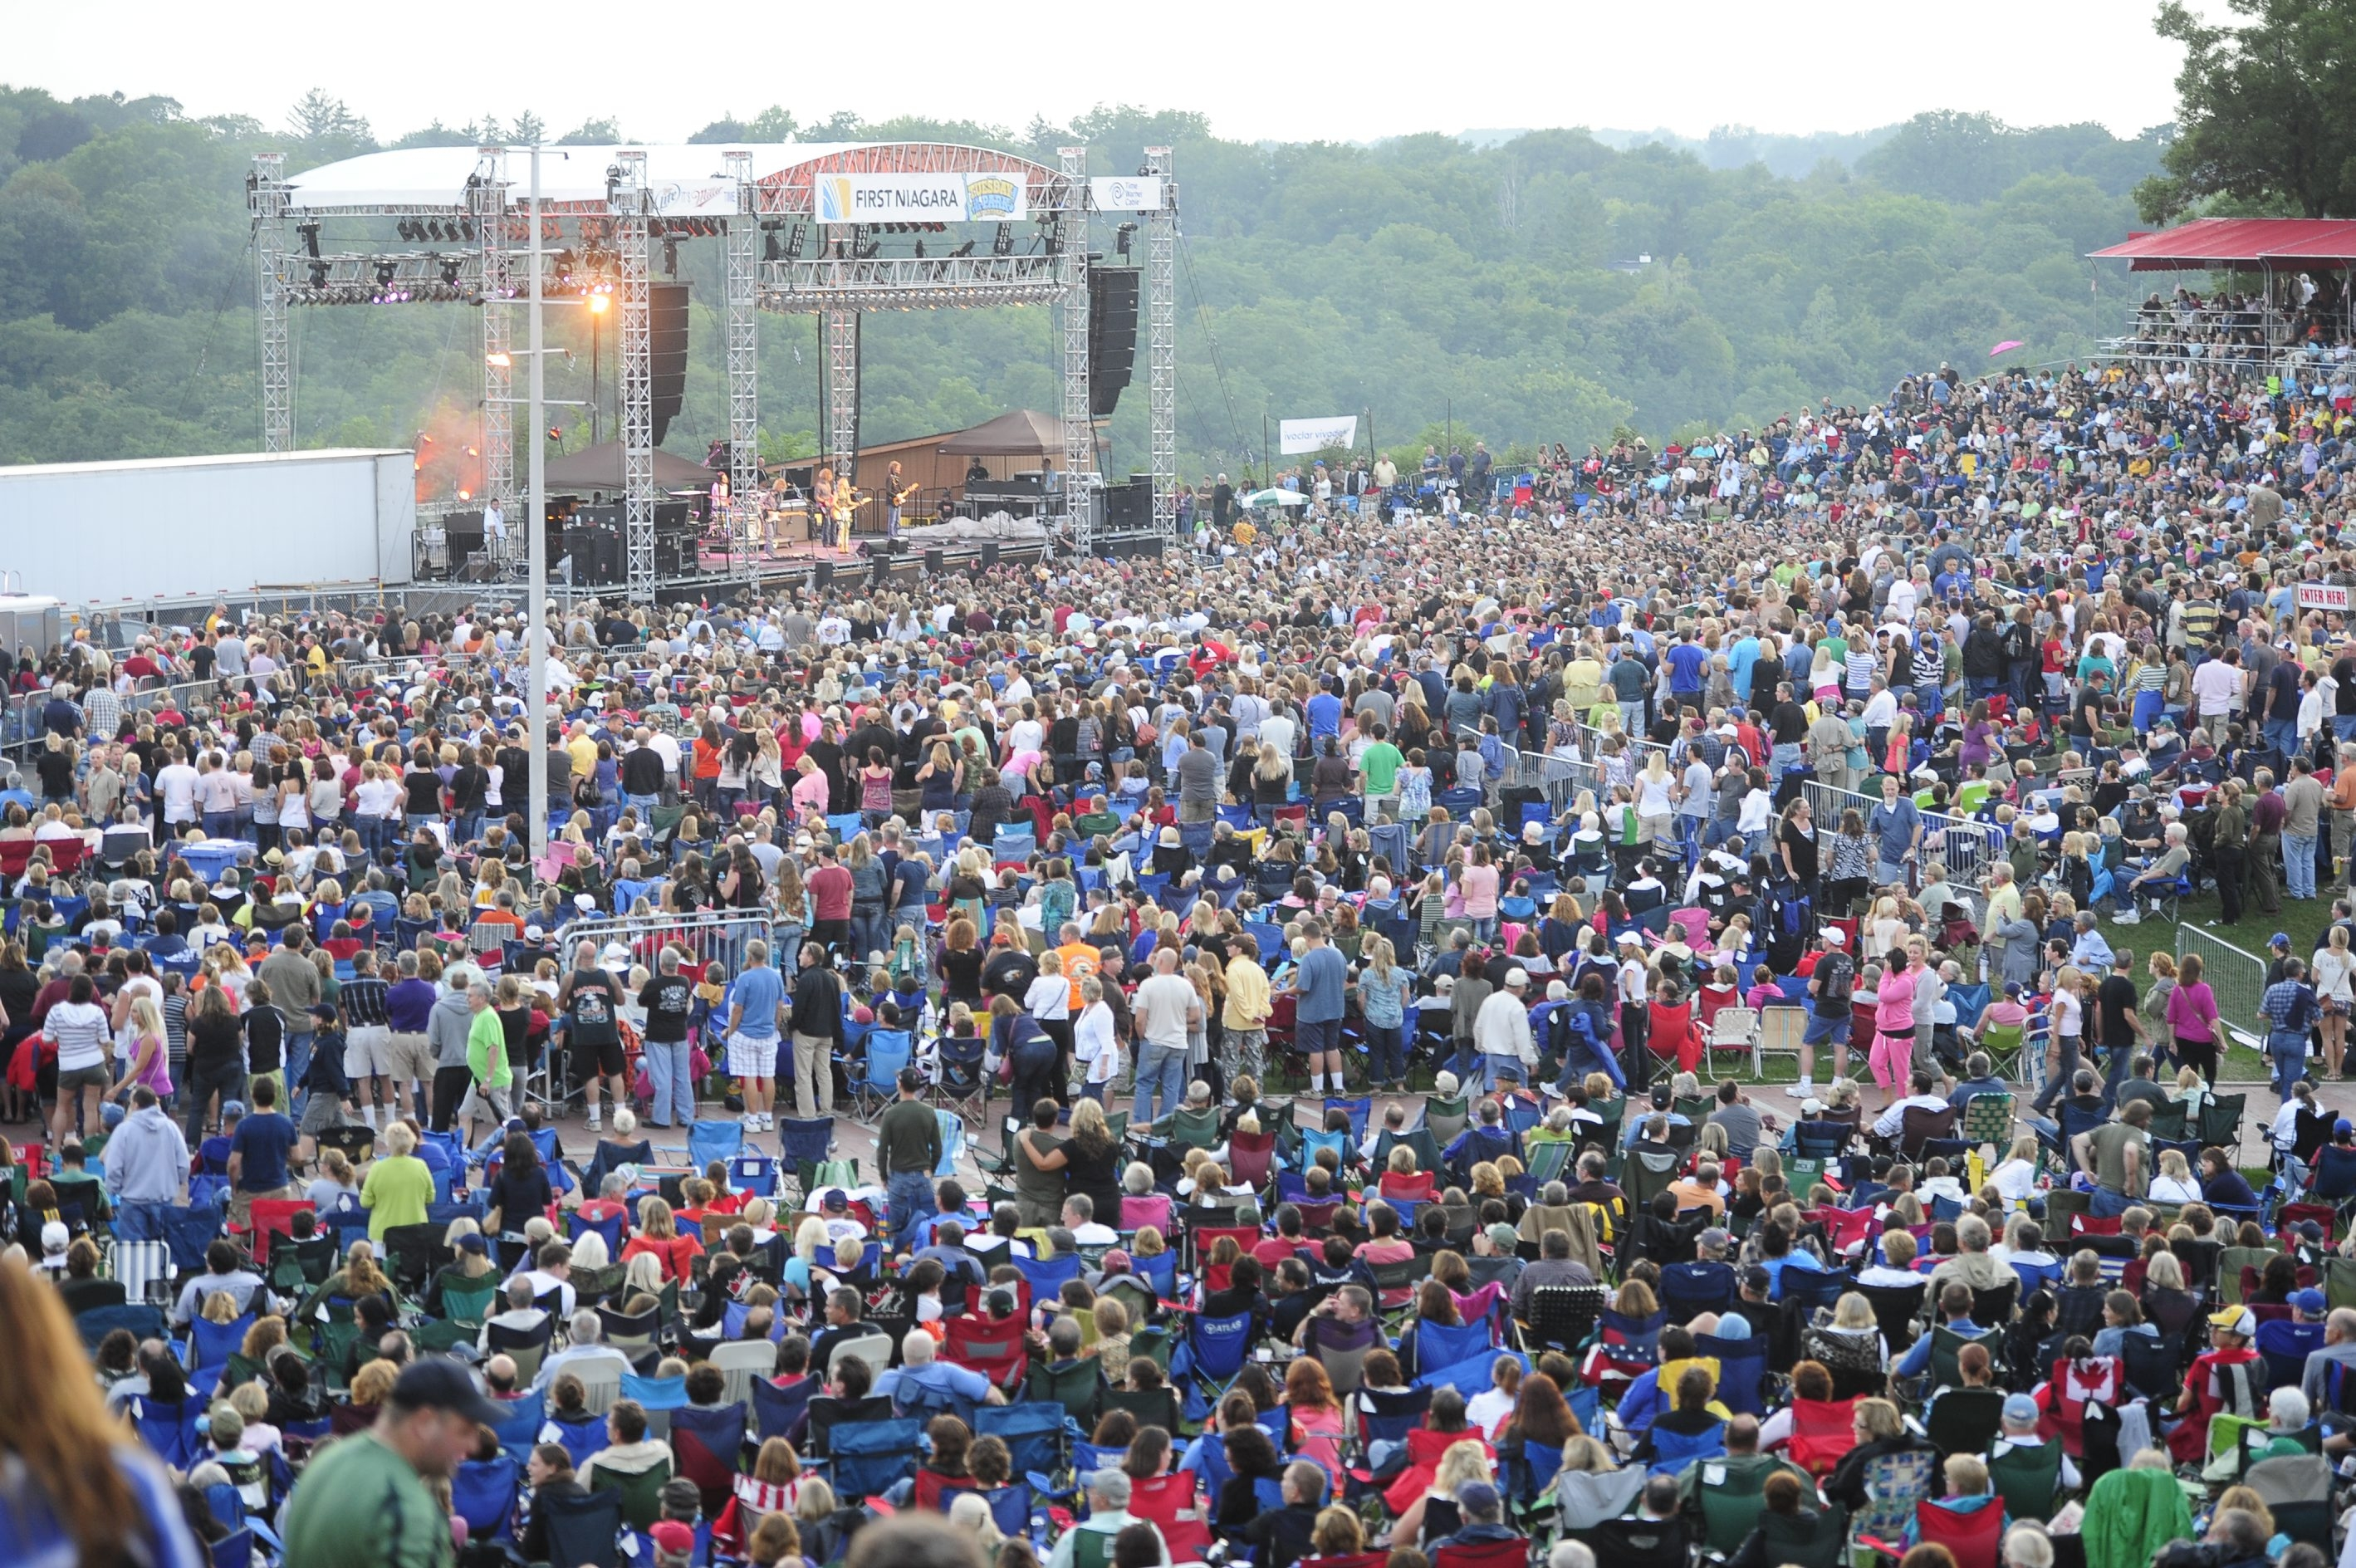 A huge crowd flocked to Artpark in Lewiston for Sheryl Crow's show Aug. 14 of last year.  This year marks the 14th season of concerts at the venue, which has focused on attracting more people by boosting the caliber of the performers who come.